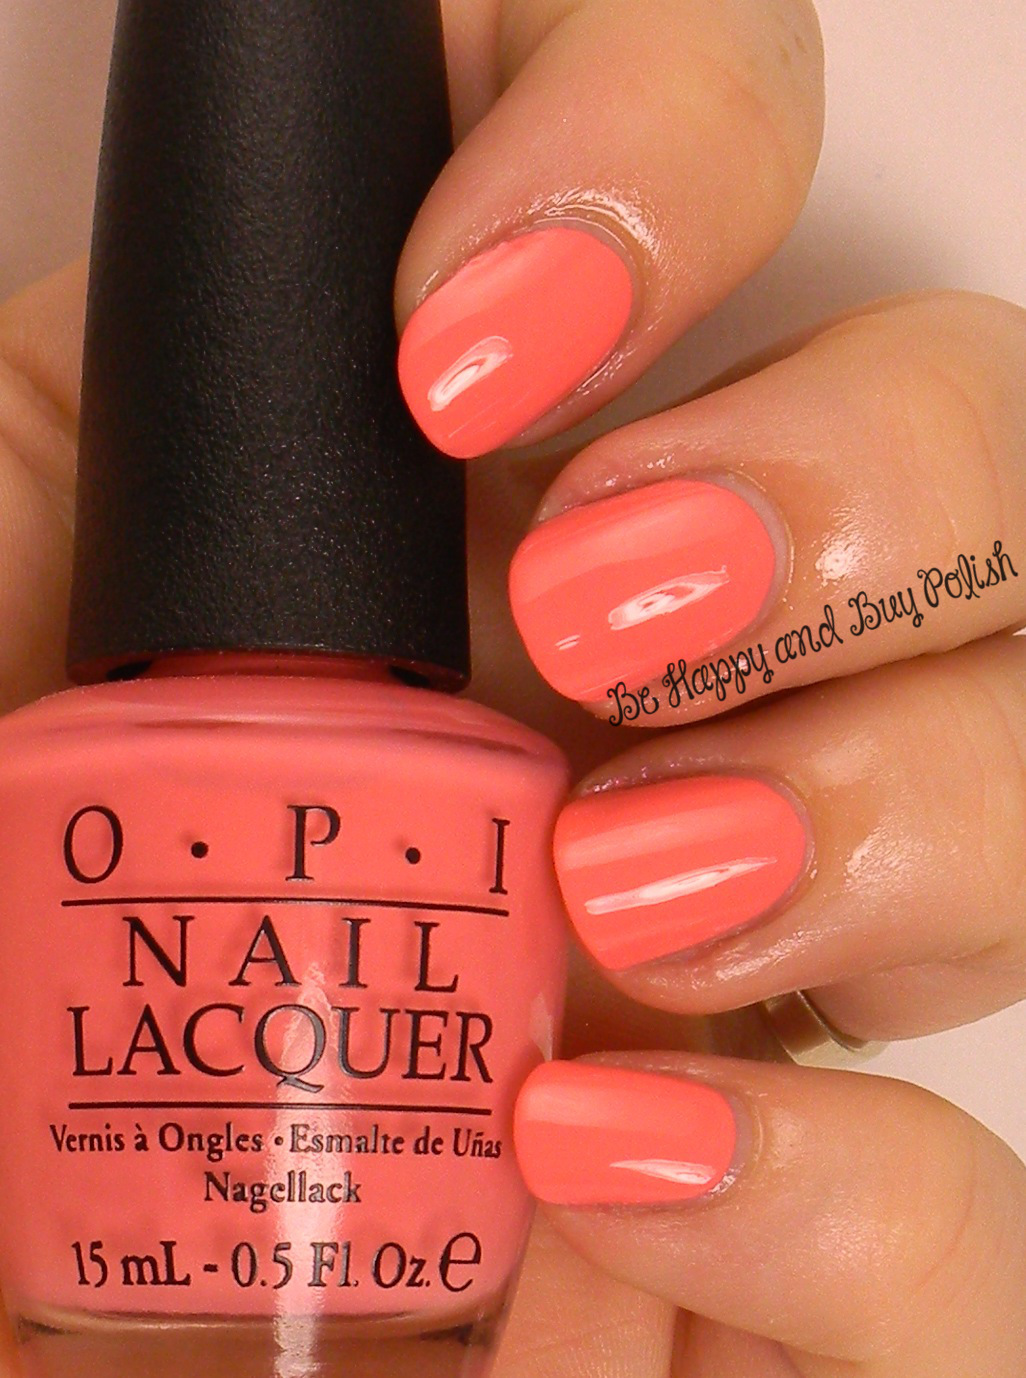 Opi coca cola nail polish collection partial be happy and buy opi sorry im fizzy today be happy and buy polish prinsesfo Gallery